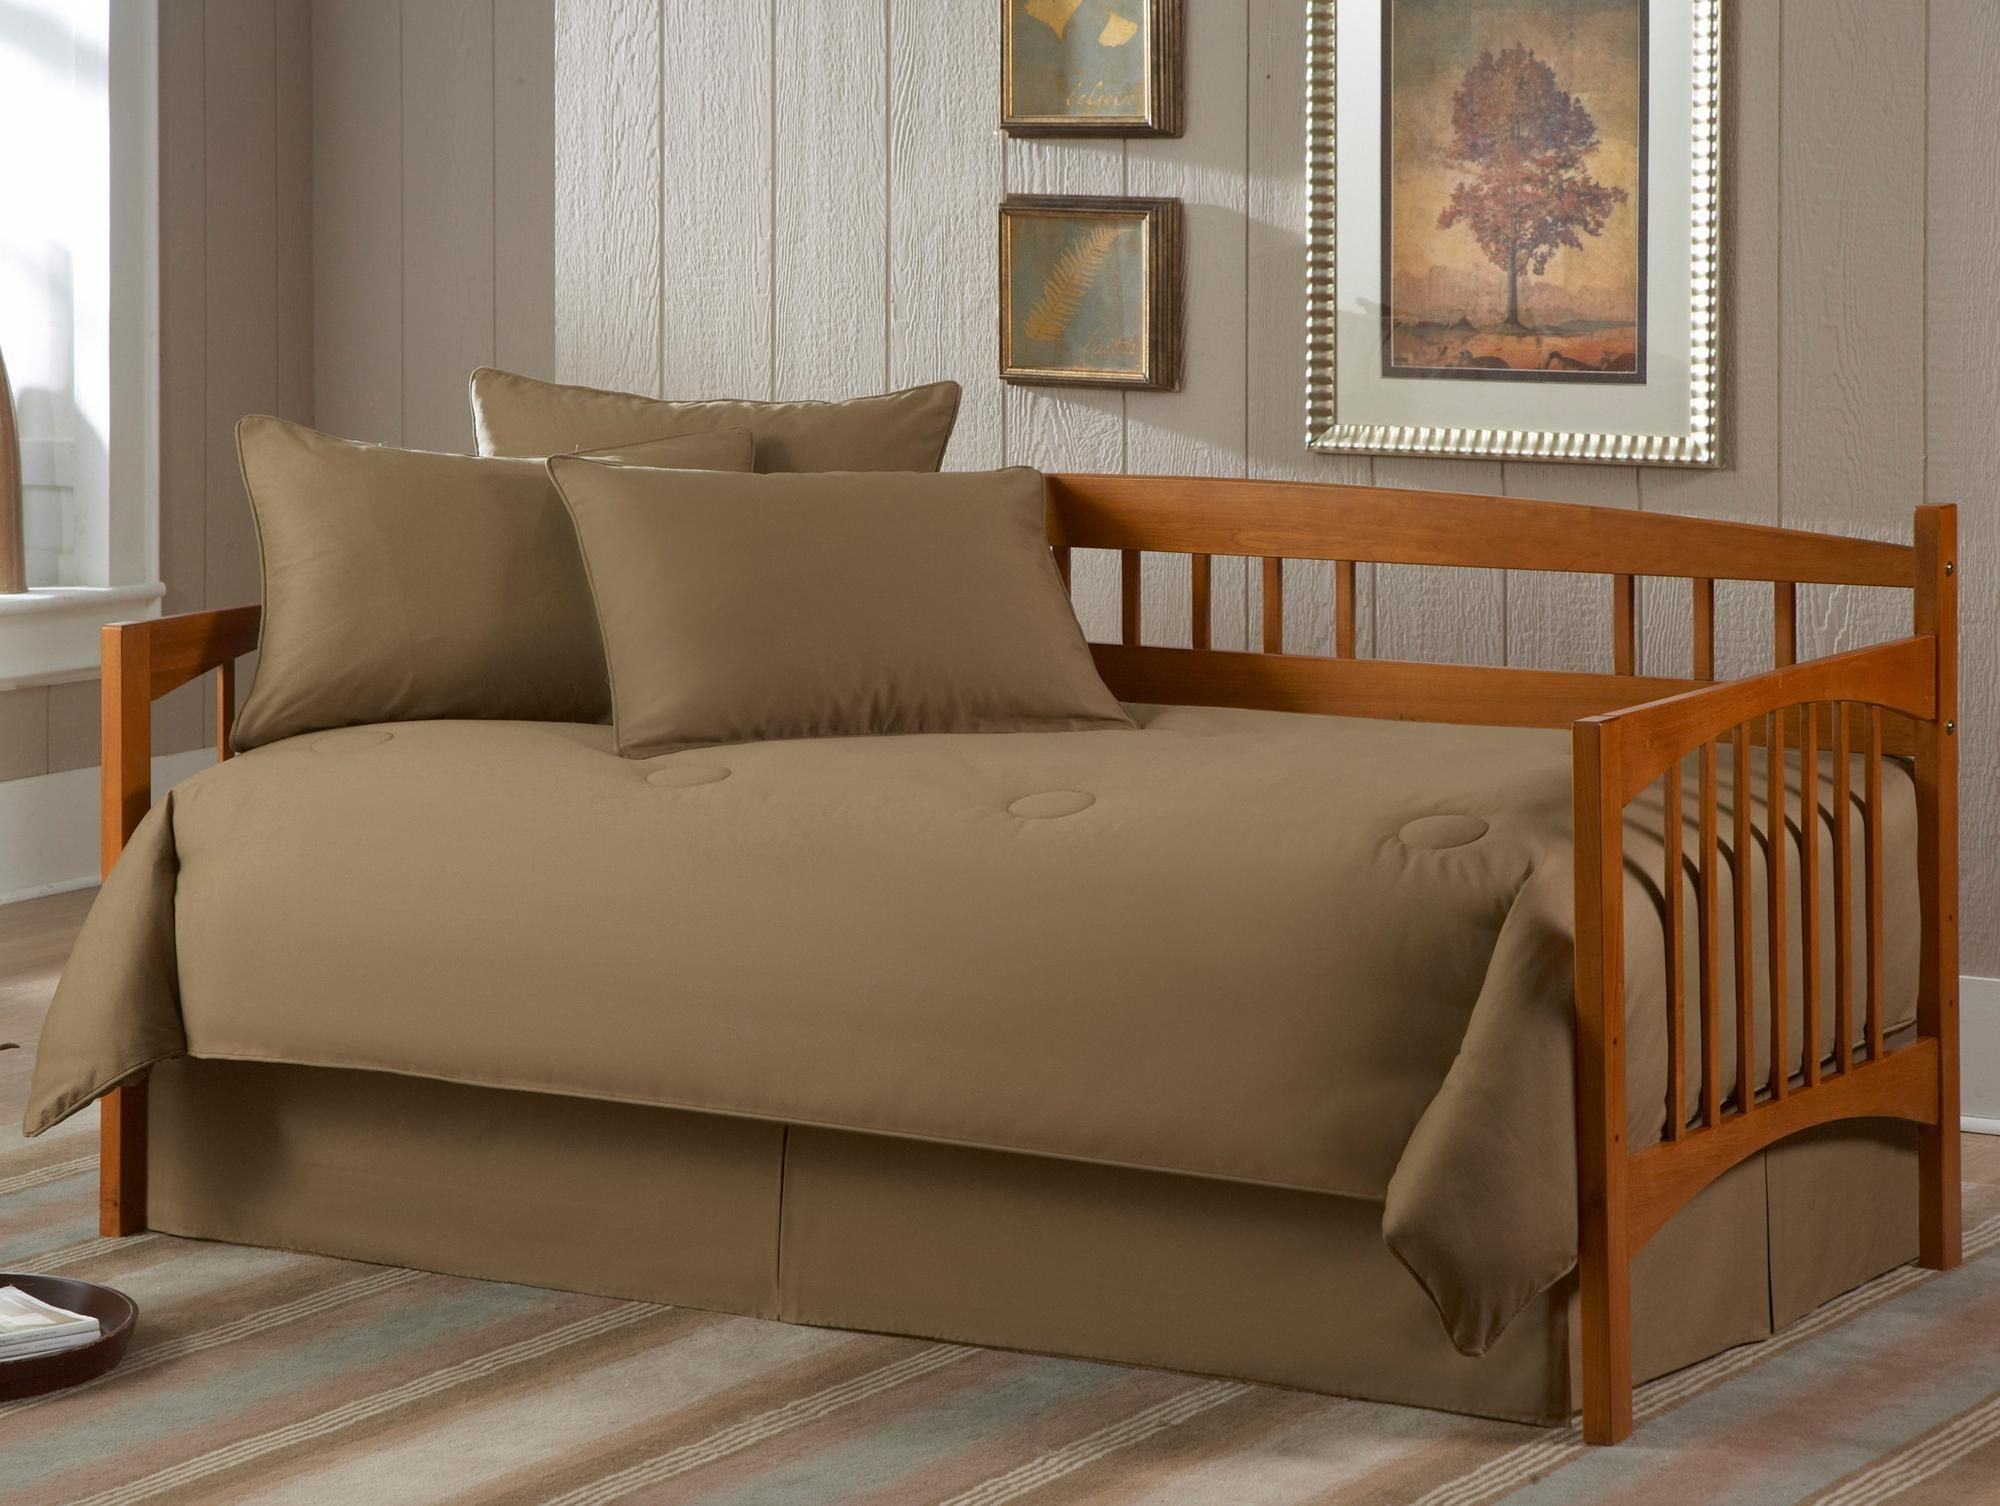 Solid Khaki Paramount 5-piece Daybed Bedding Set - Style